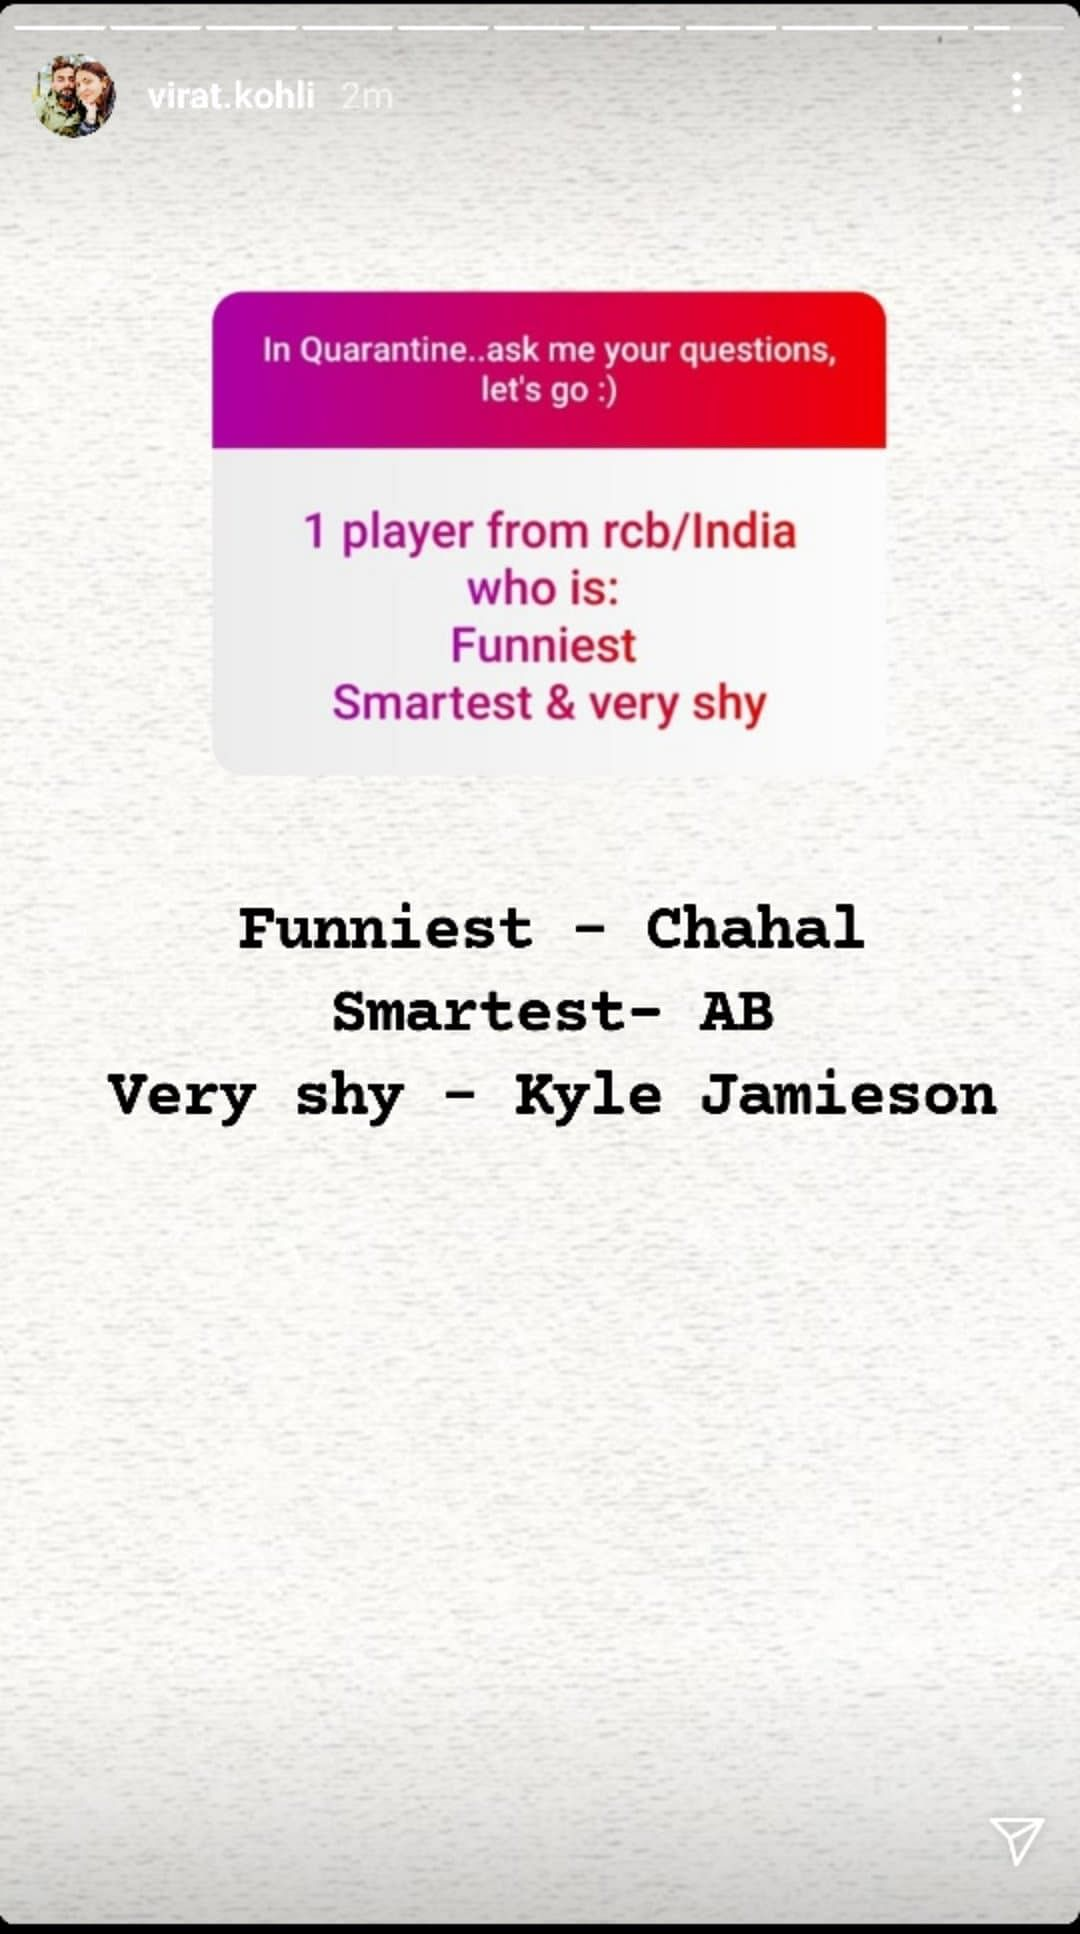 Virat Kohli Names One Player From India/RCB Who Is Funniest, Smartest And Very Shy